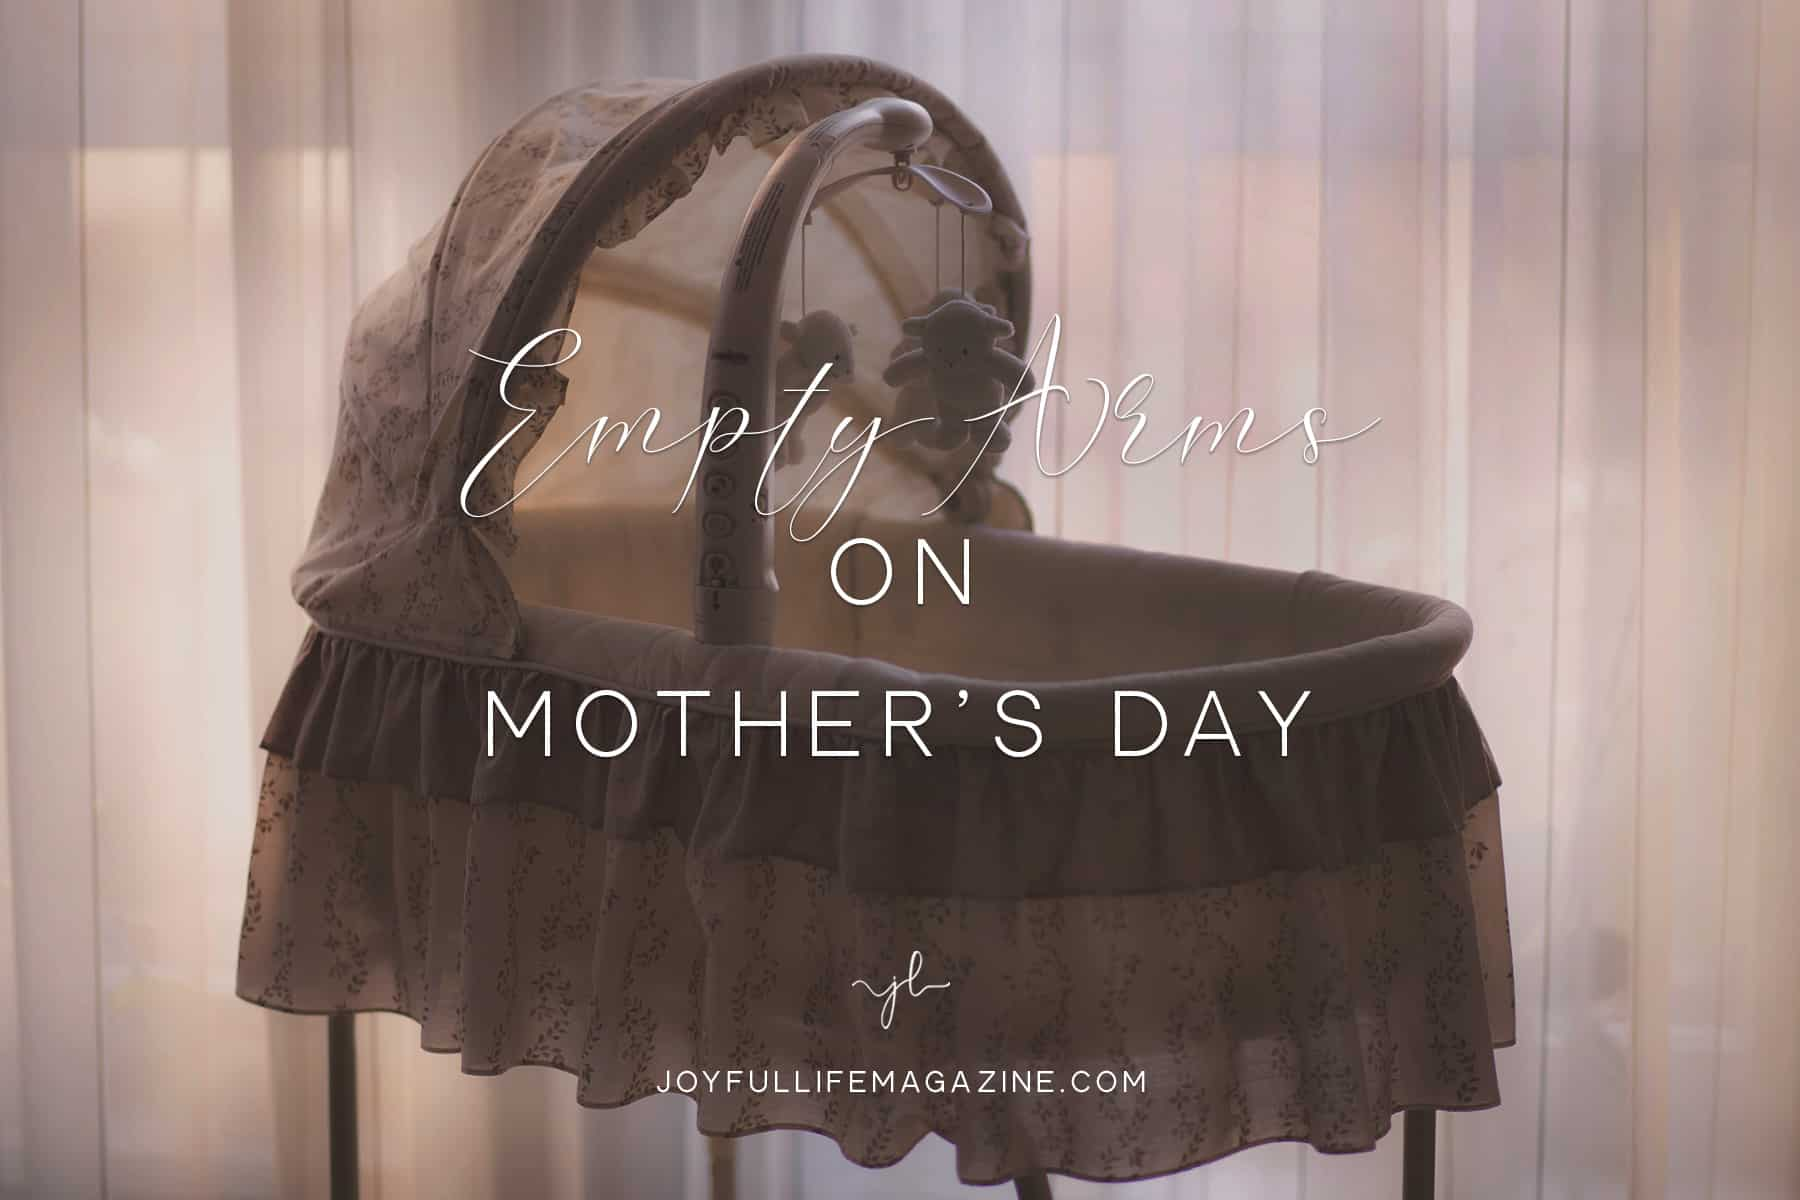 Empty Arms on Mother's Day | by Kristy Mays | The Joyful Life Magazine